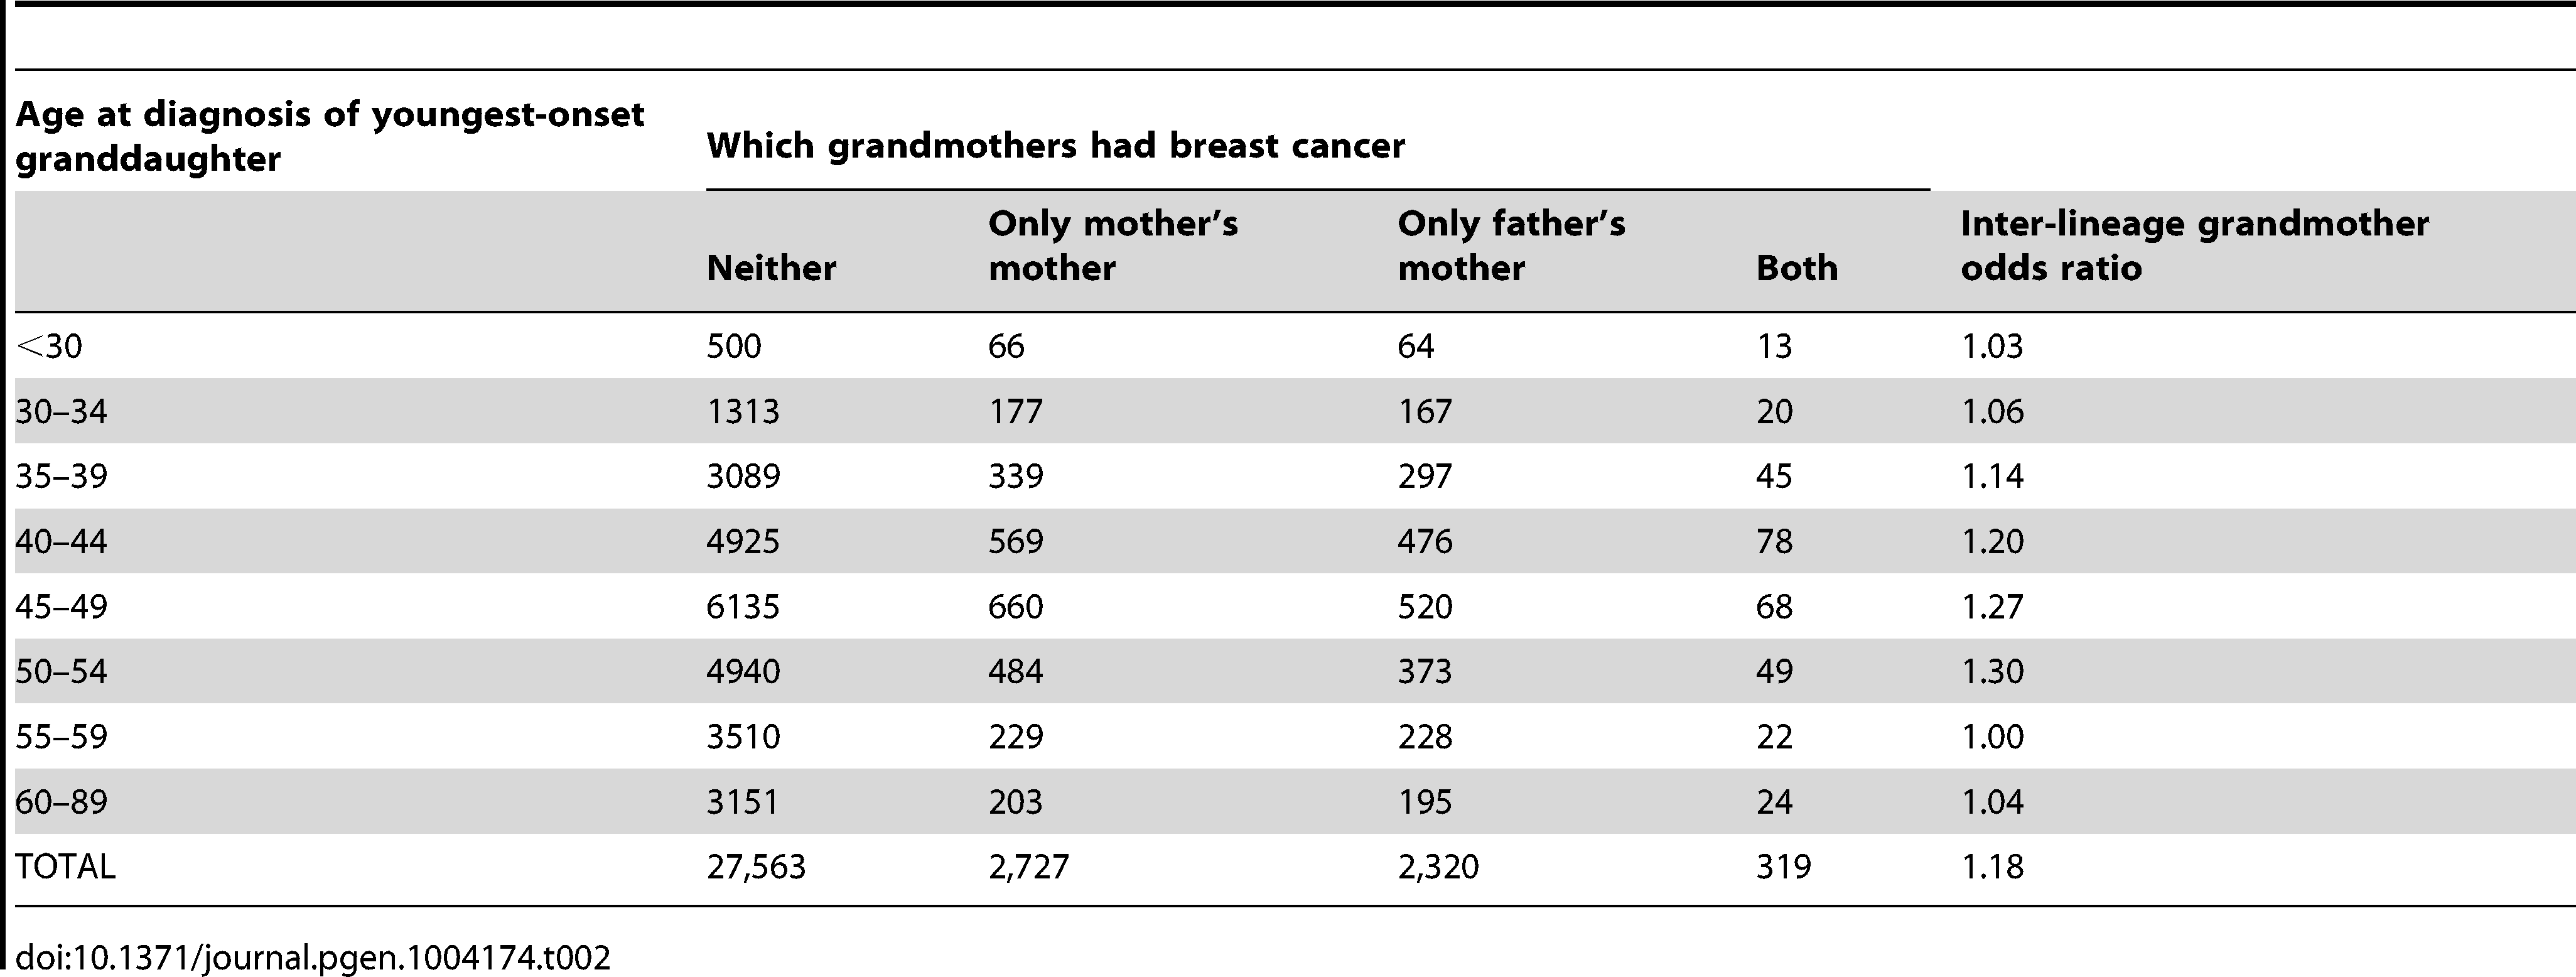 Grandmothers' breast cancer history by age at breast cancer diagnosis of the youngest-onset grand-daughter.